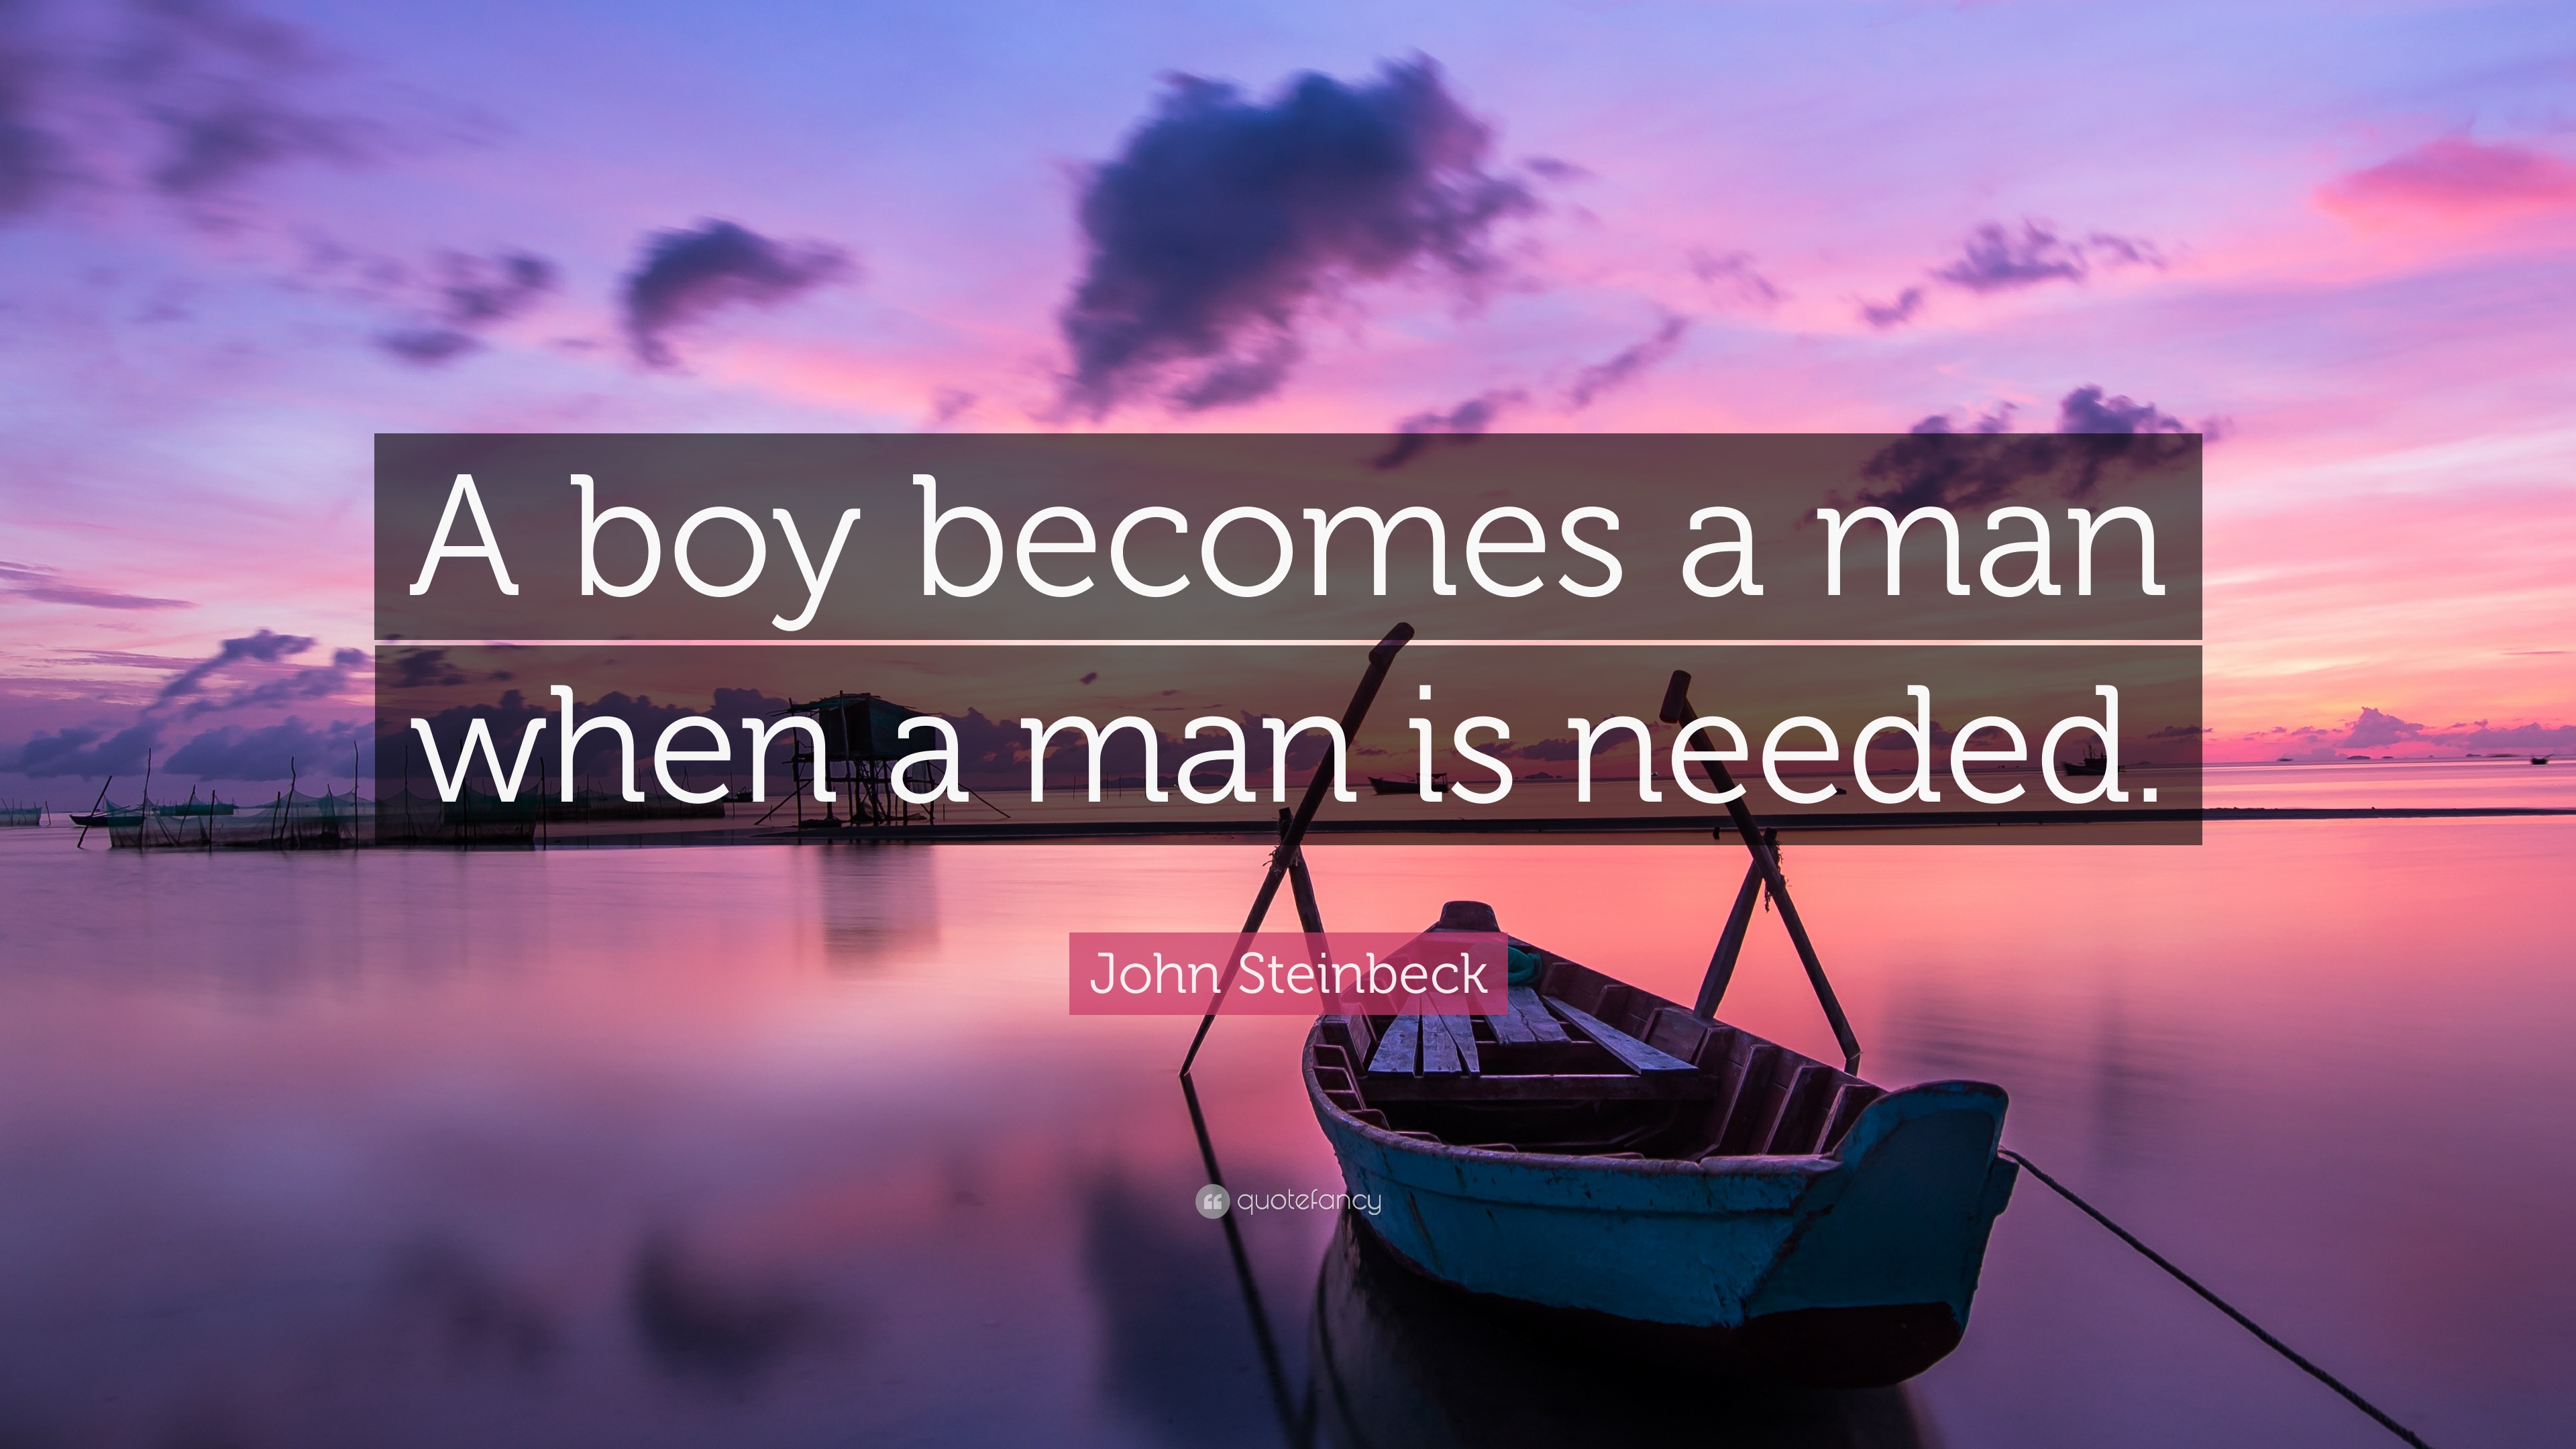 when a boy becomes a man essay How to write an essay throughout your academic career, you will often be asked to write essays you may have to work on an assigned essay for class, enter an essay.